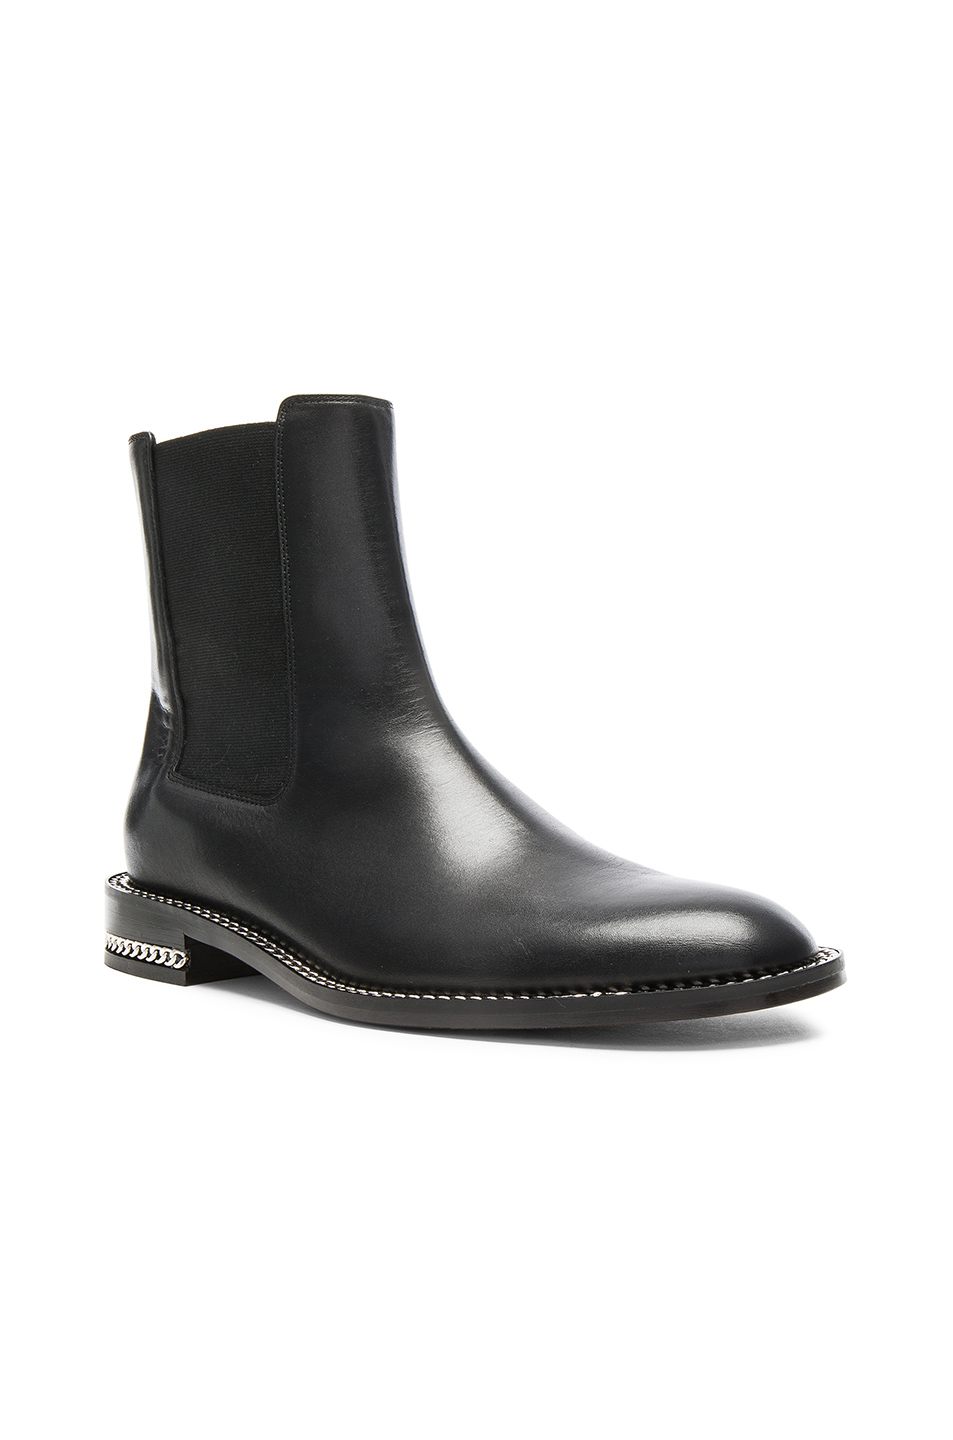 Flat Black Leather Ankle Boots - Cr Boot